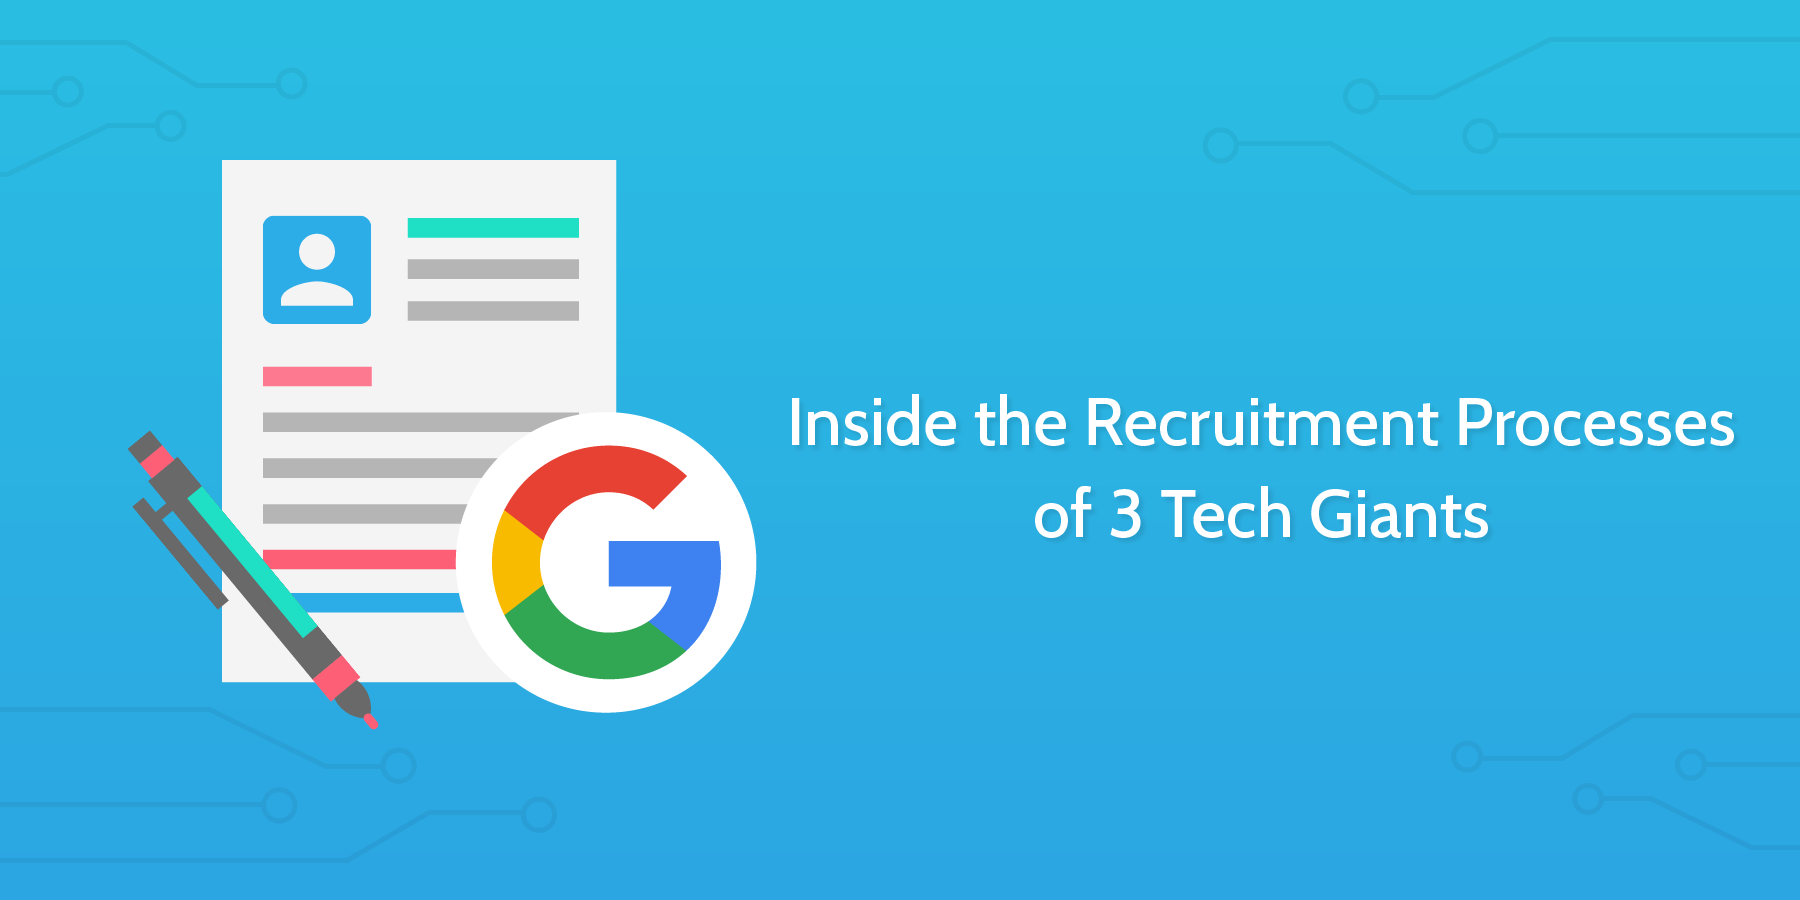 Inside the Recruitment Processes of 3 Tech Giants (and How to